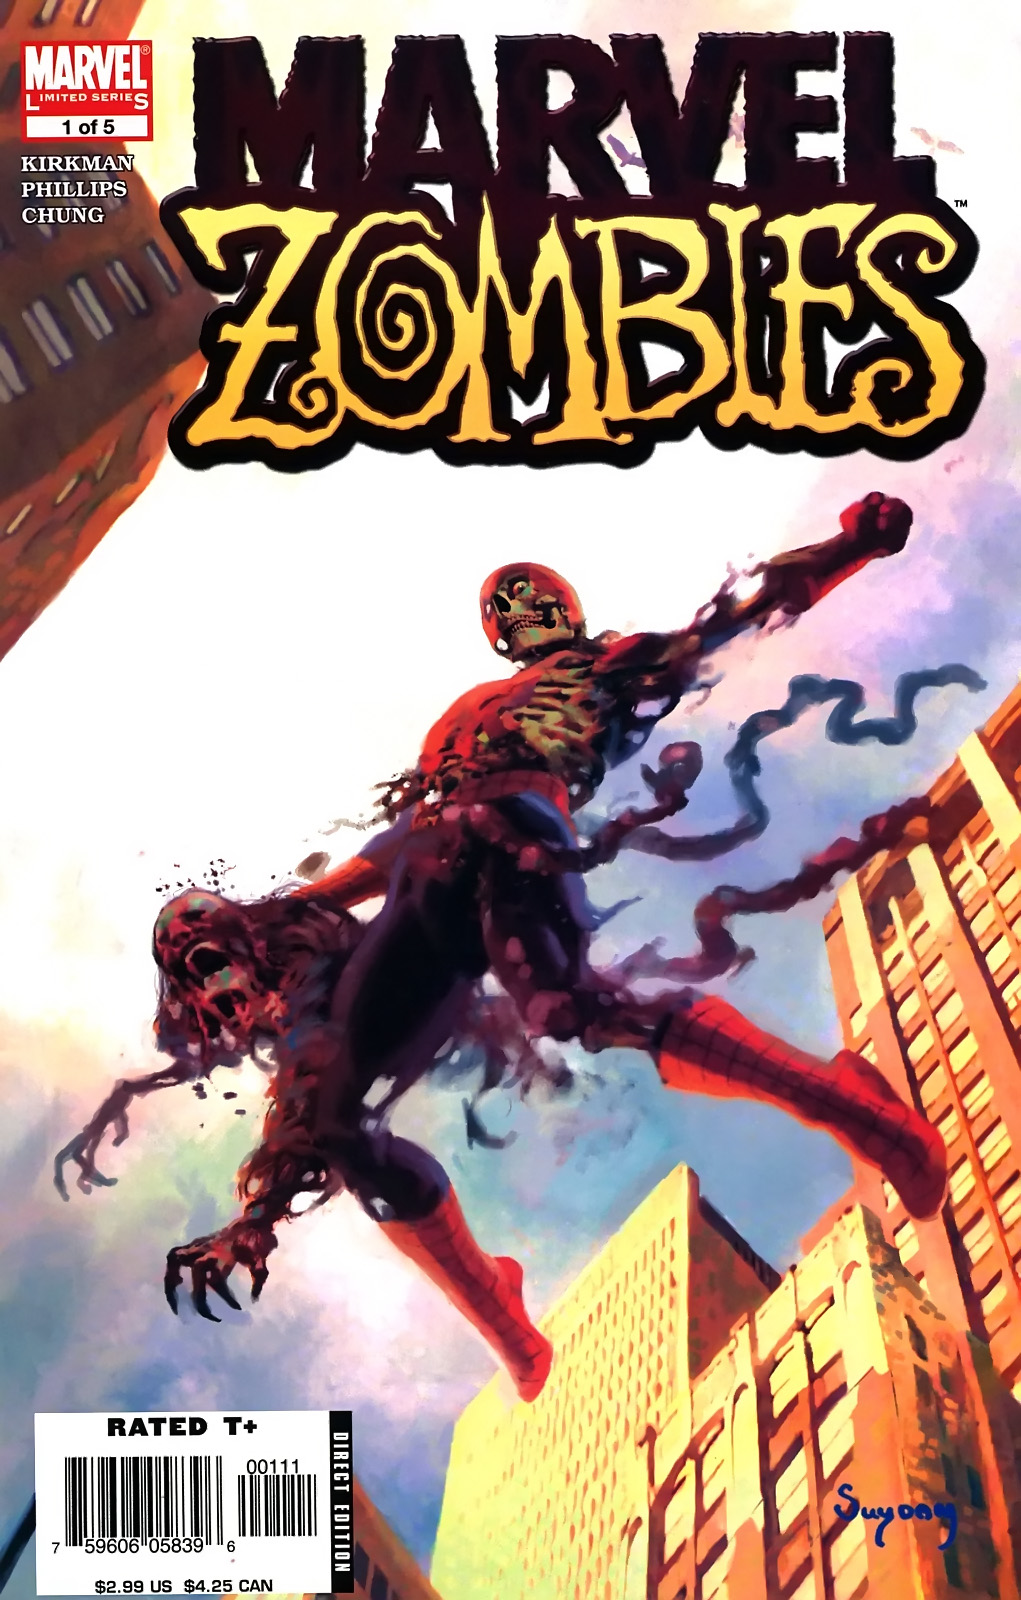 Fotos de marvel zombies / Imagenes de marvel zombies - Galeria de ...